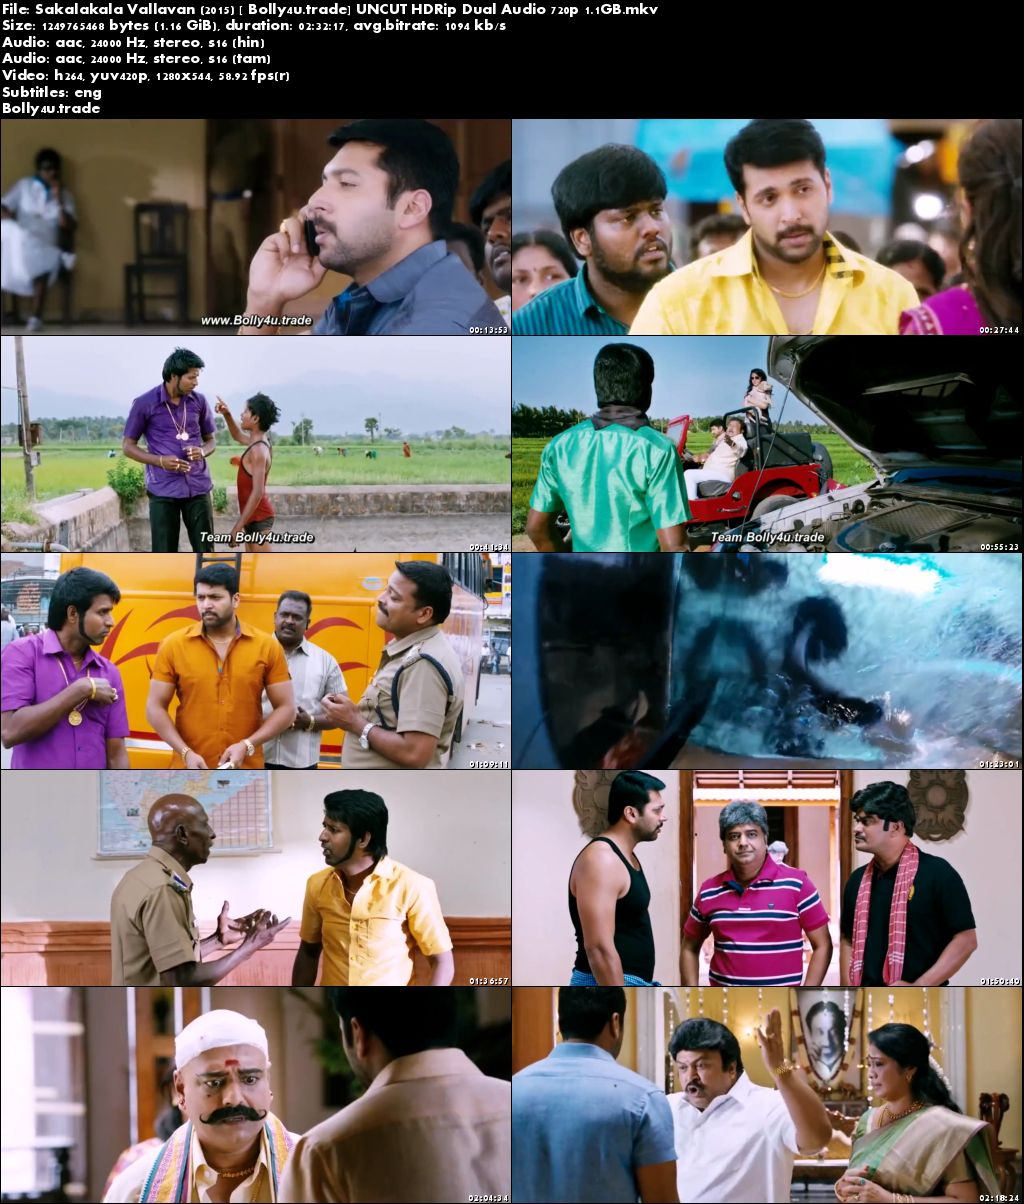 Sakalakala Vallavan 2015 HDRip UNCUT Hindi Dual Audio 720p Download